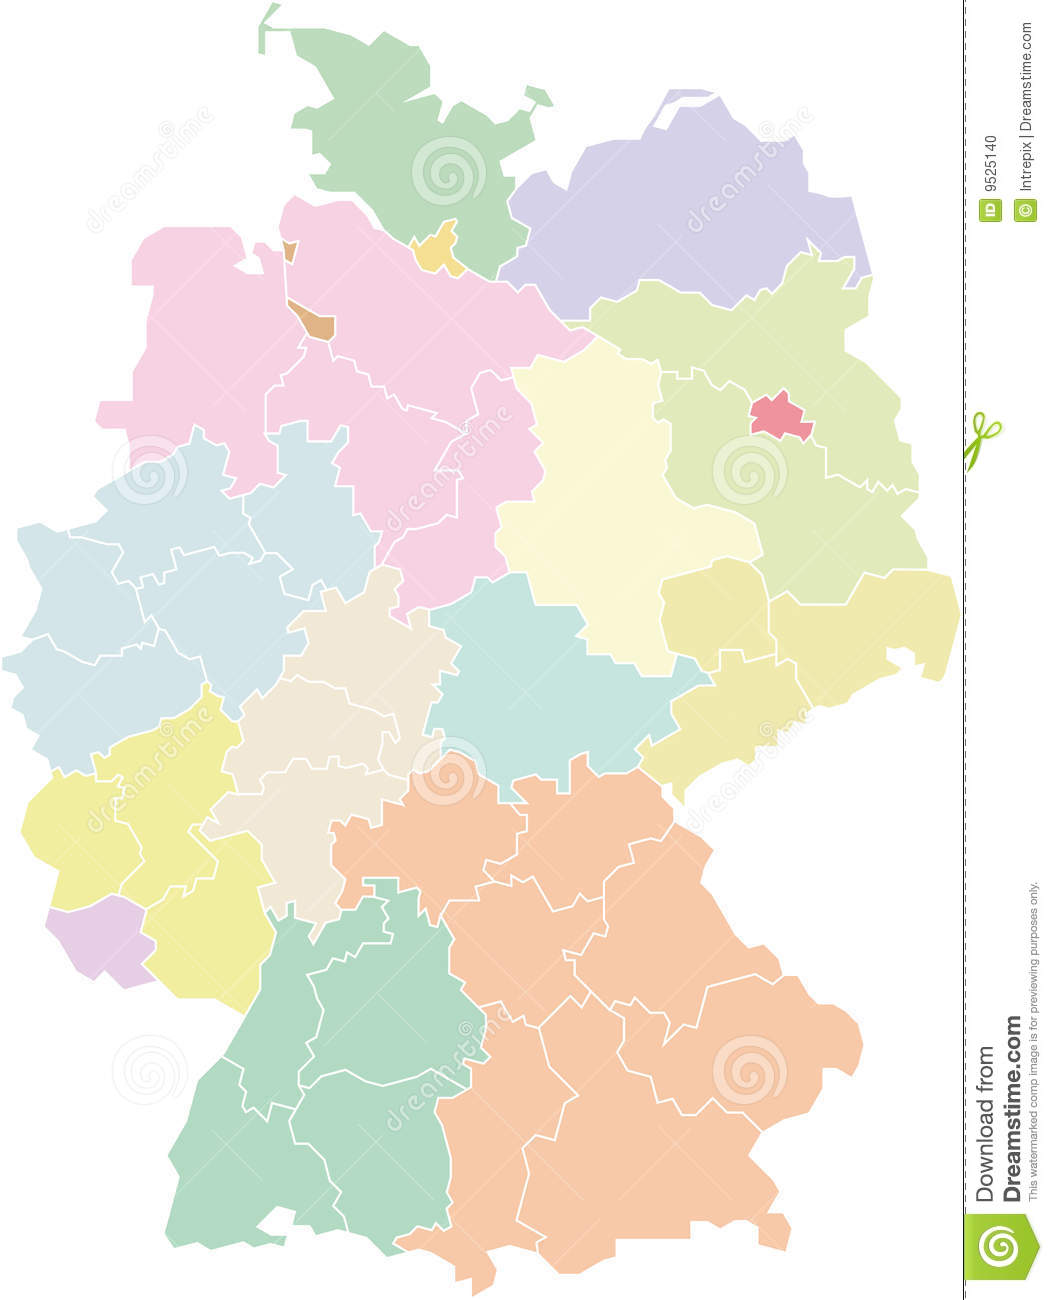 Regions Of Germany Map.Germany Map Federal States And Regions Stock Vector Illustration